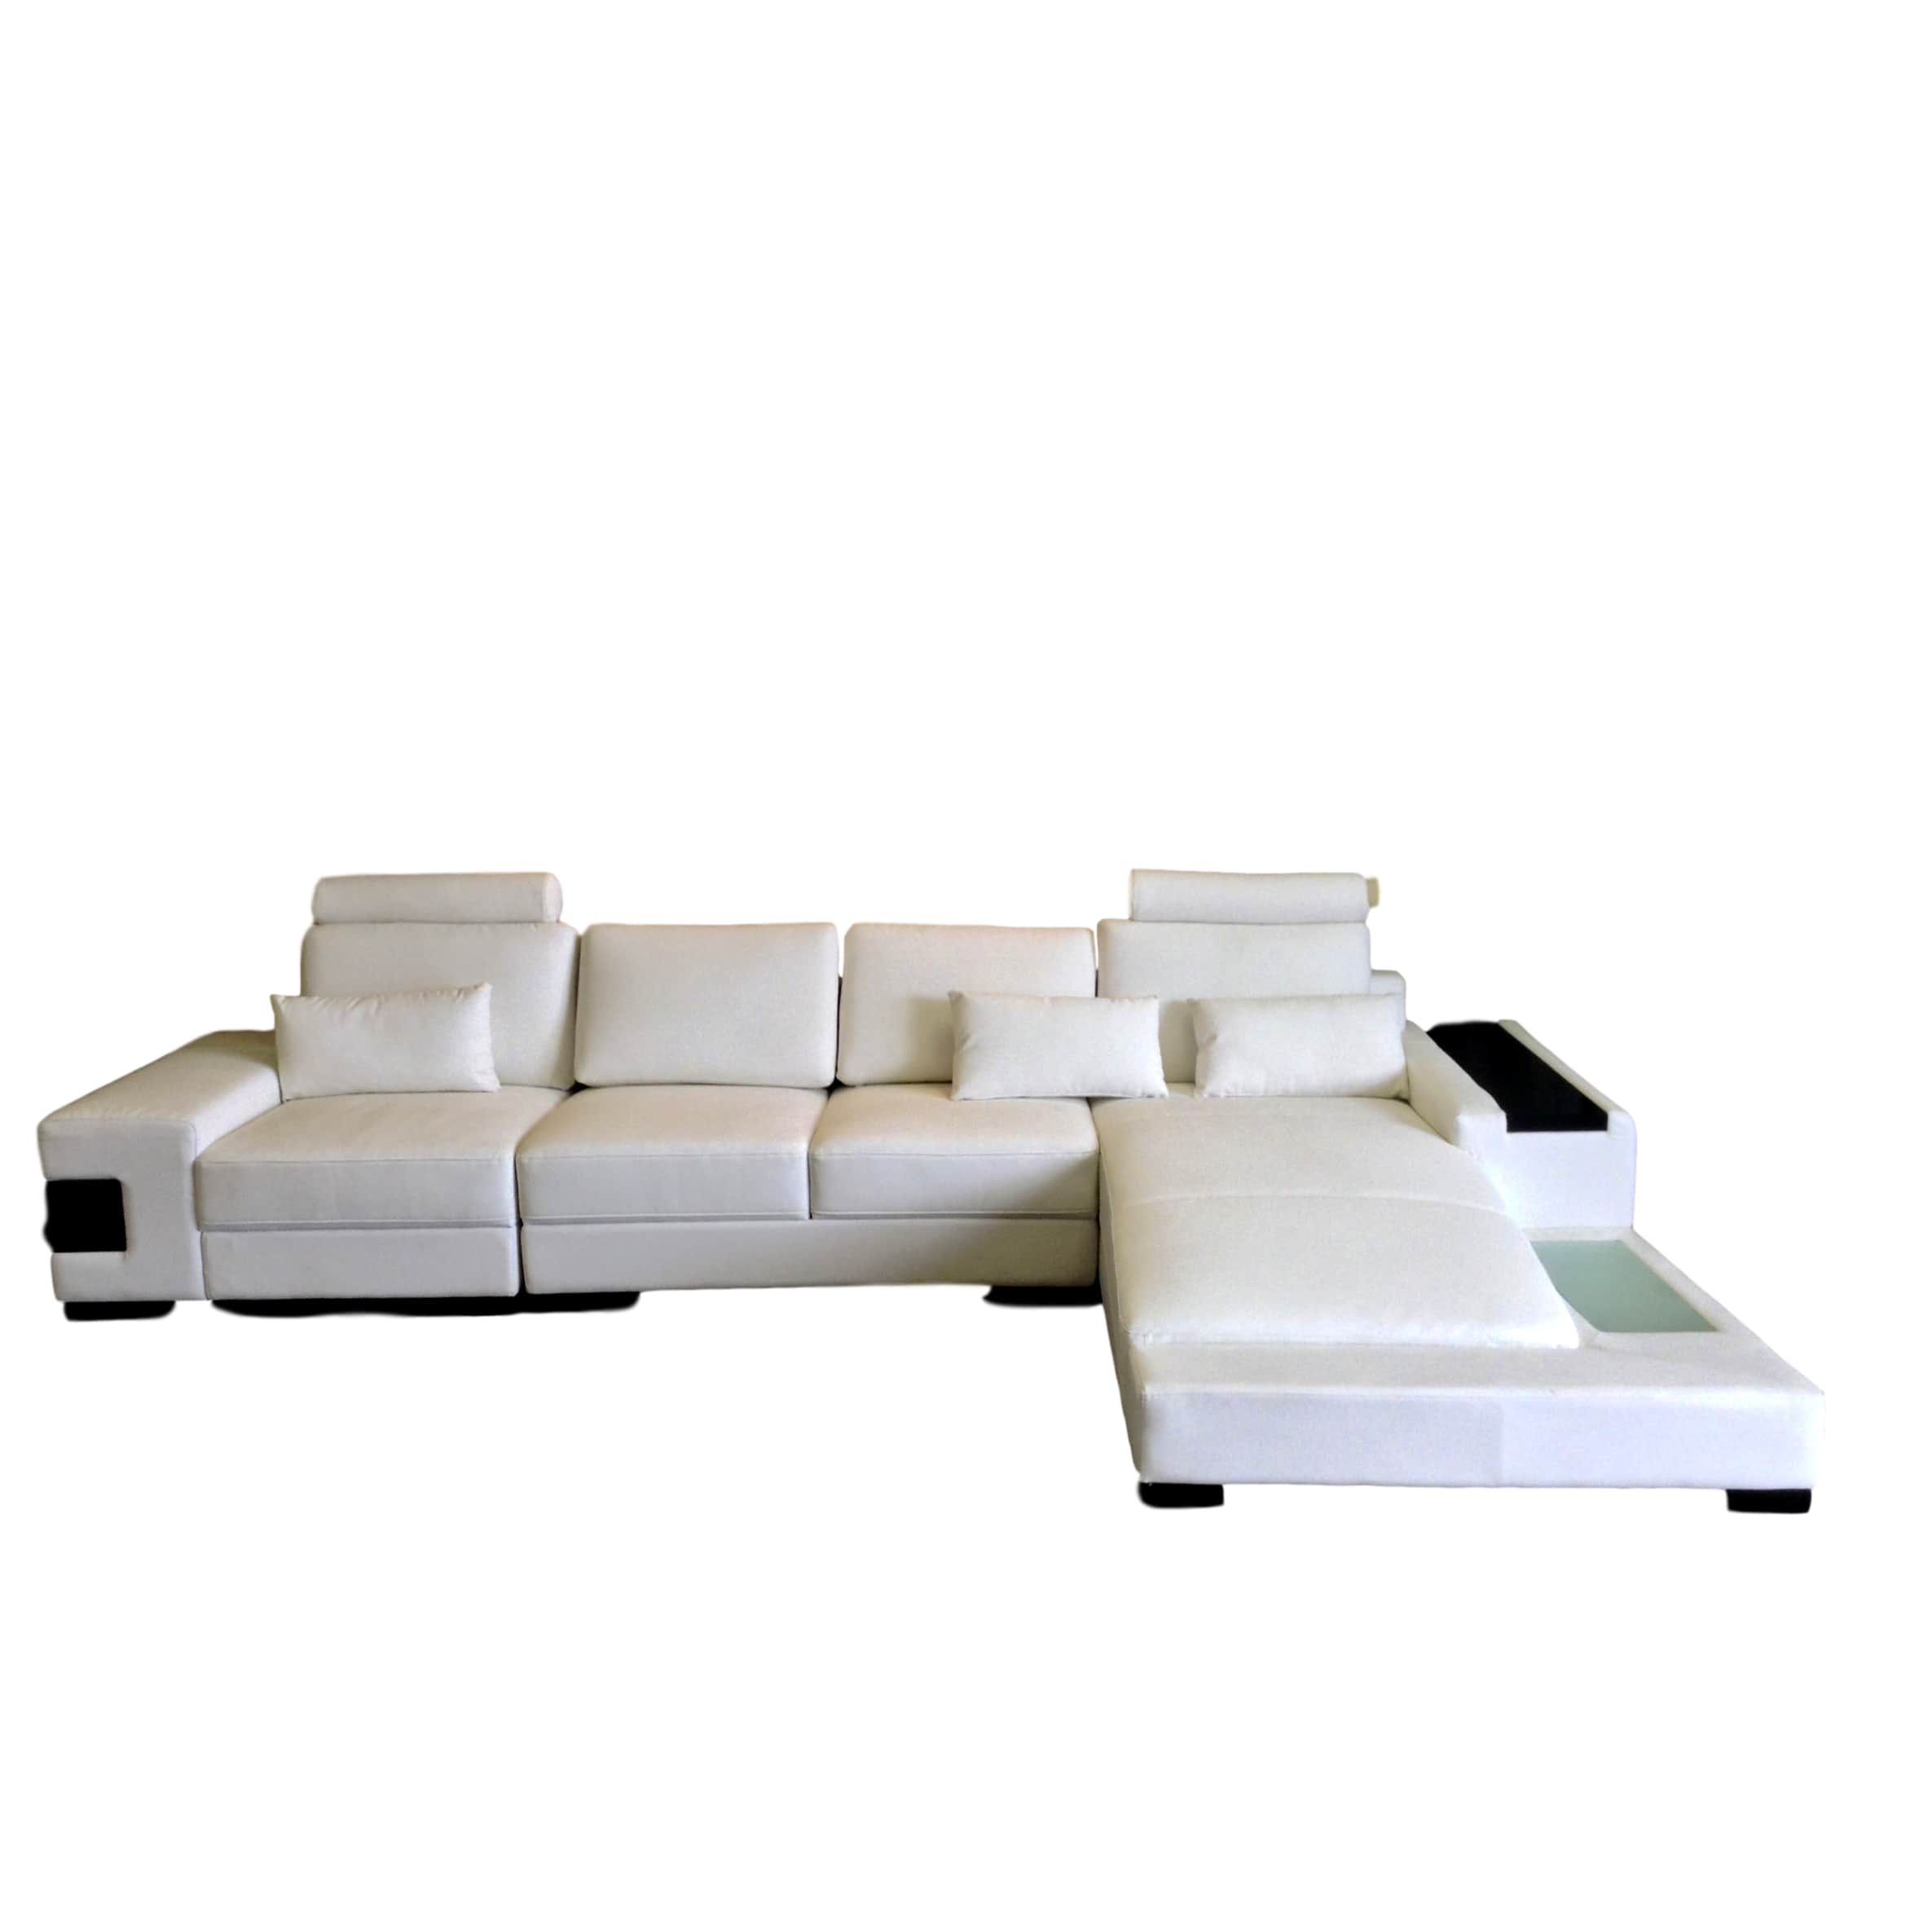 on sale c352a 8227d Diamond Modern White Leather Sectional Sofa with Lights